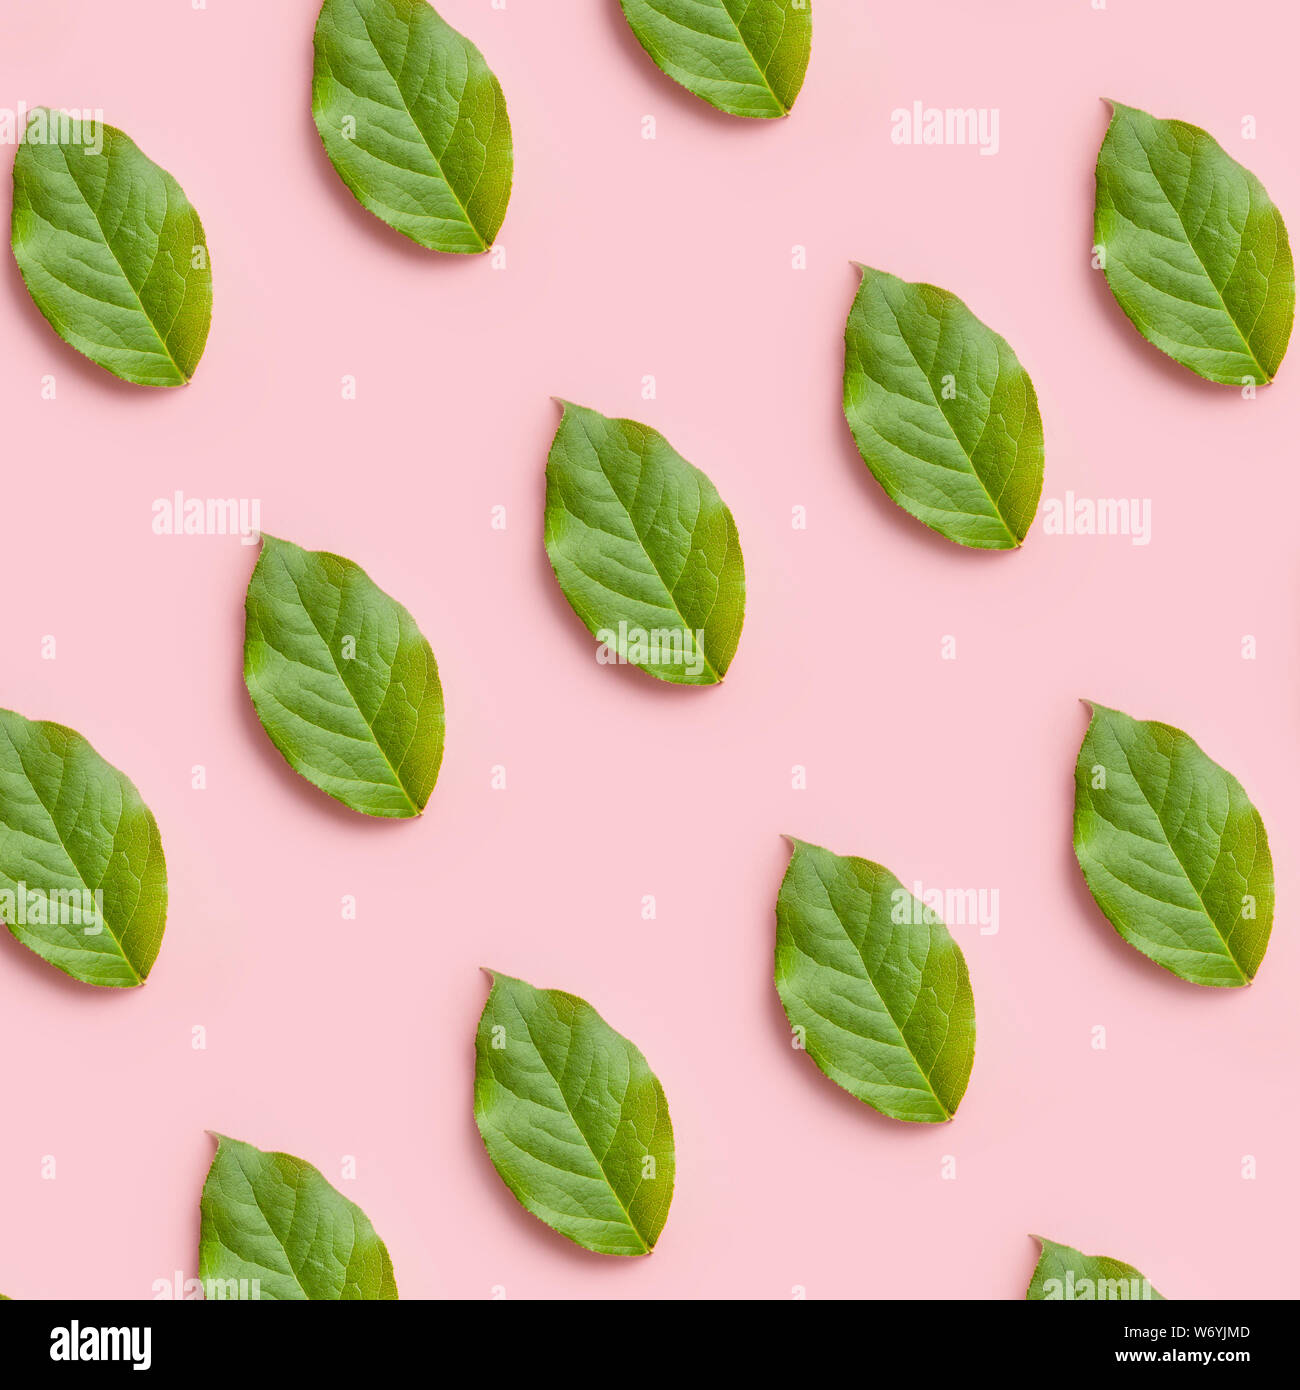 fresh green leaves pattern on a pink background, creative flat lay for design Stock Photo